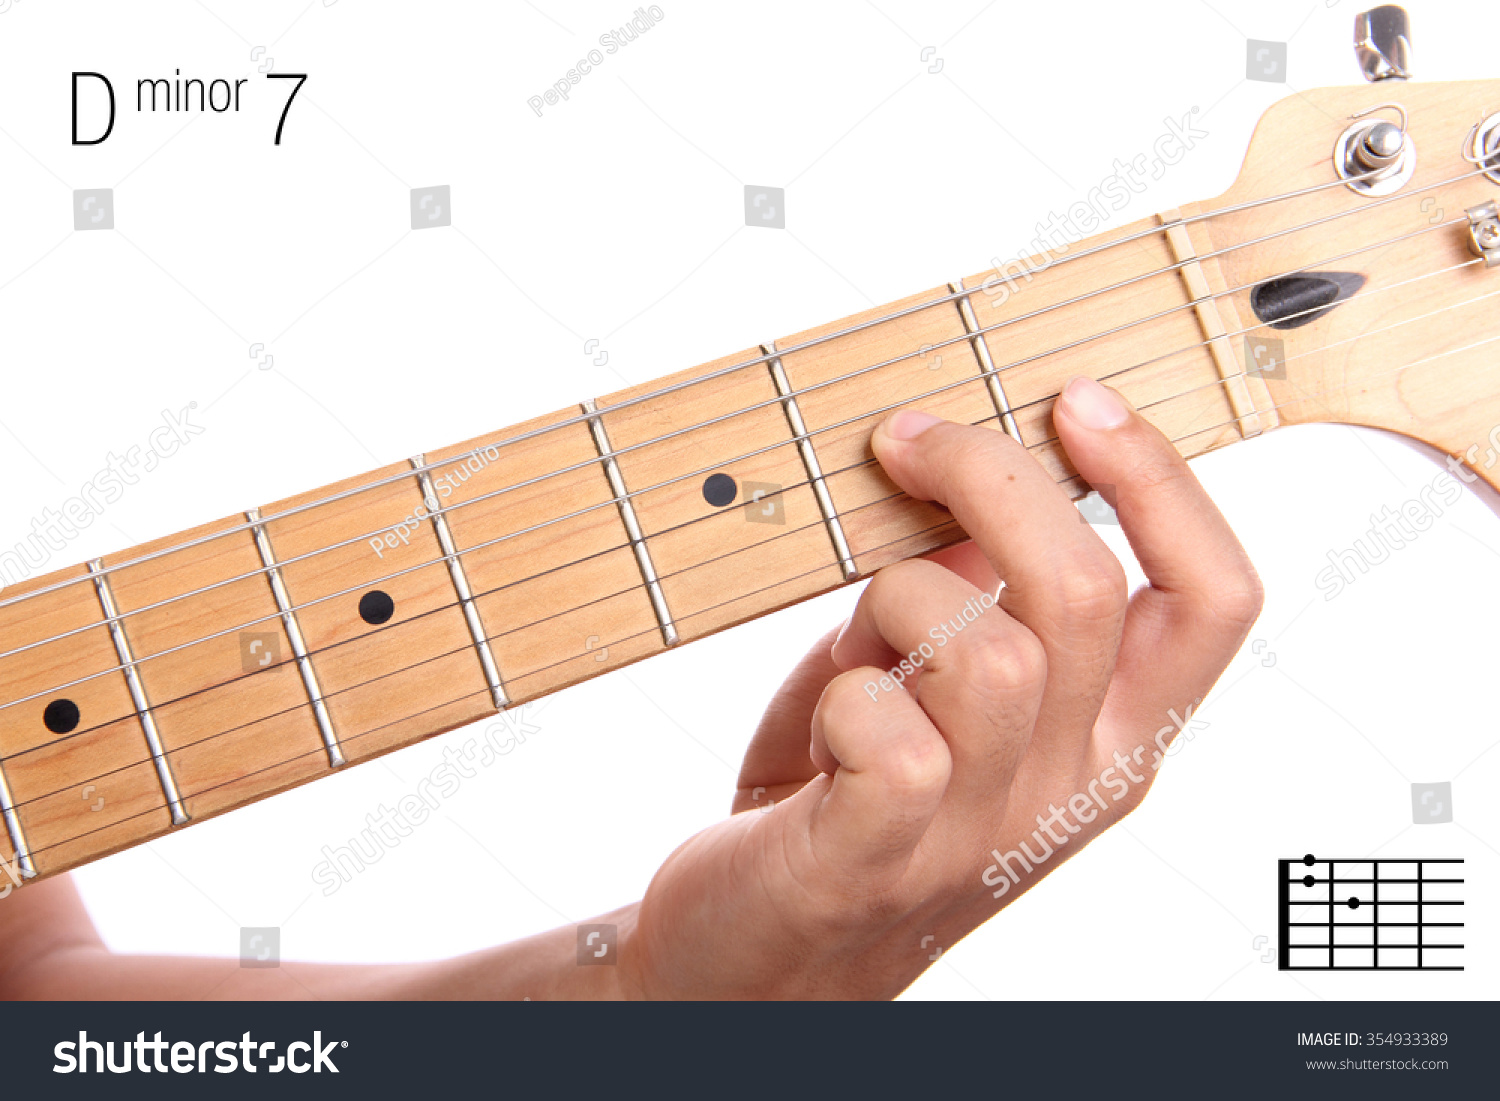 Royalty Free Dm7 Minor Seventh Keys Guitar 354933389 Stock Photo